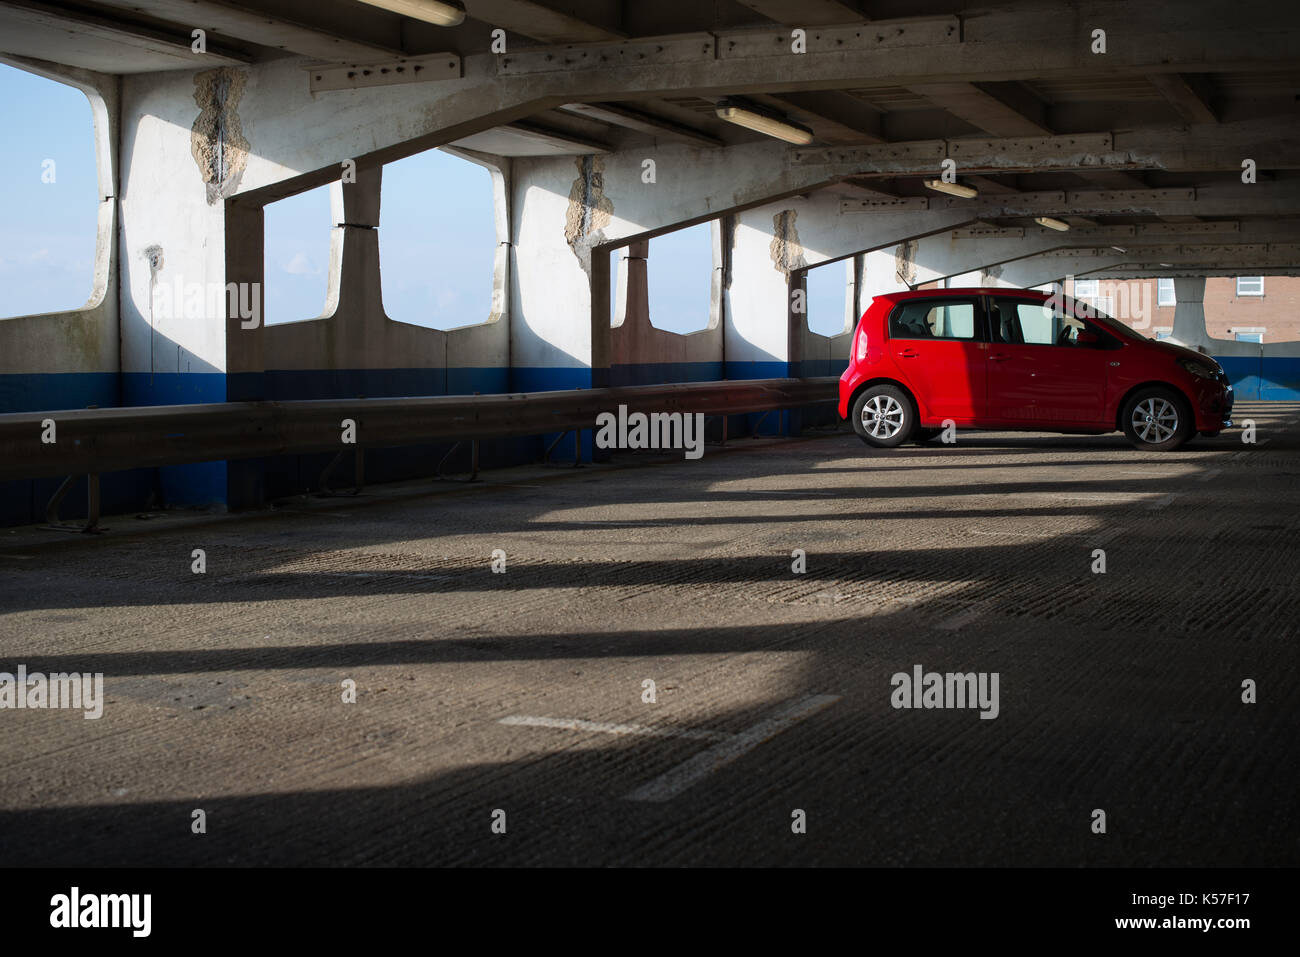 A small red car parked in a empty multistorey car park. - Stock Image